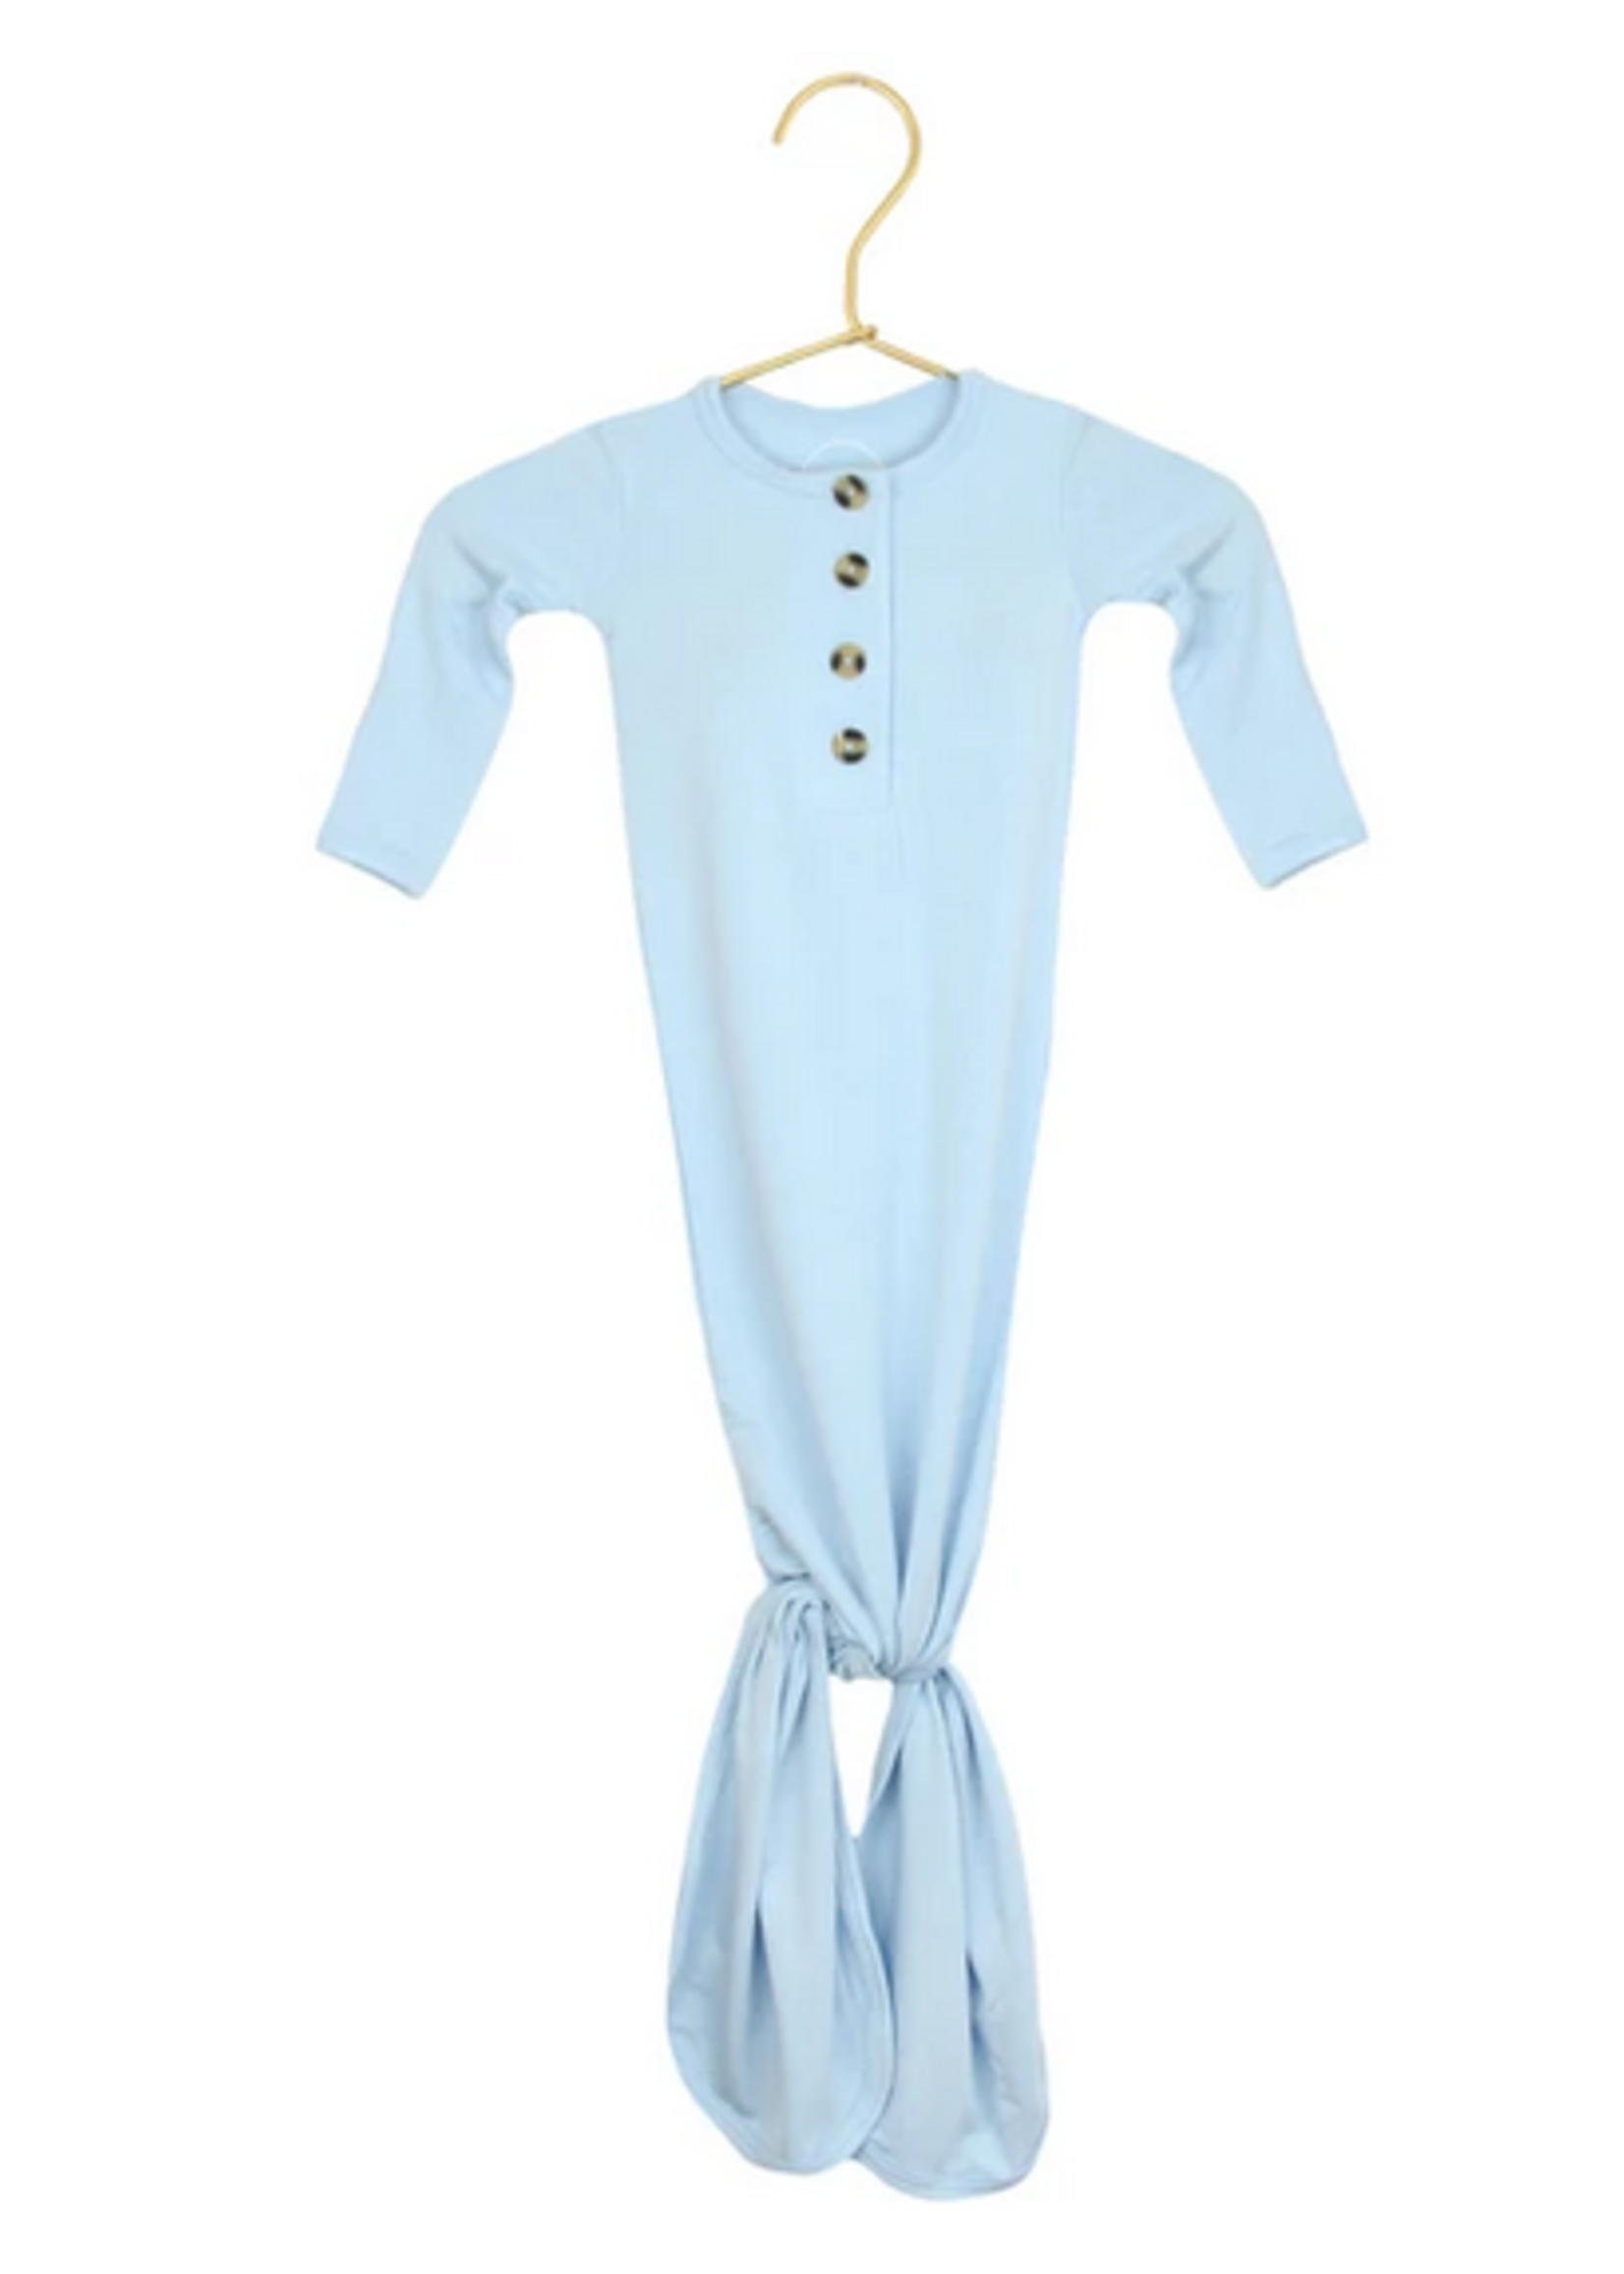 Elitaire Petite Jude Baby Blue Knotted Gown Newborn - 3 Months